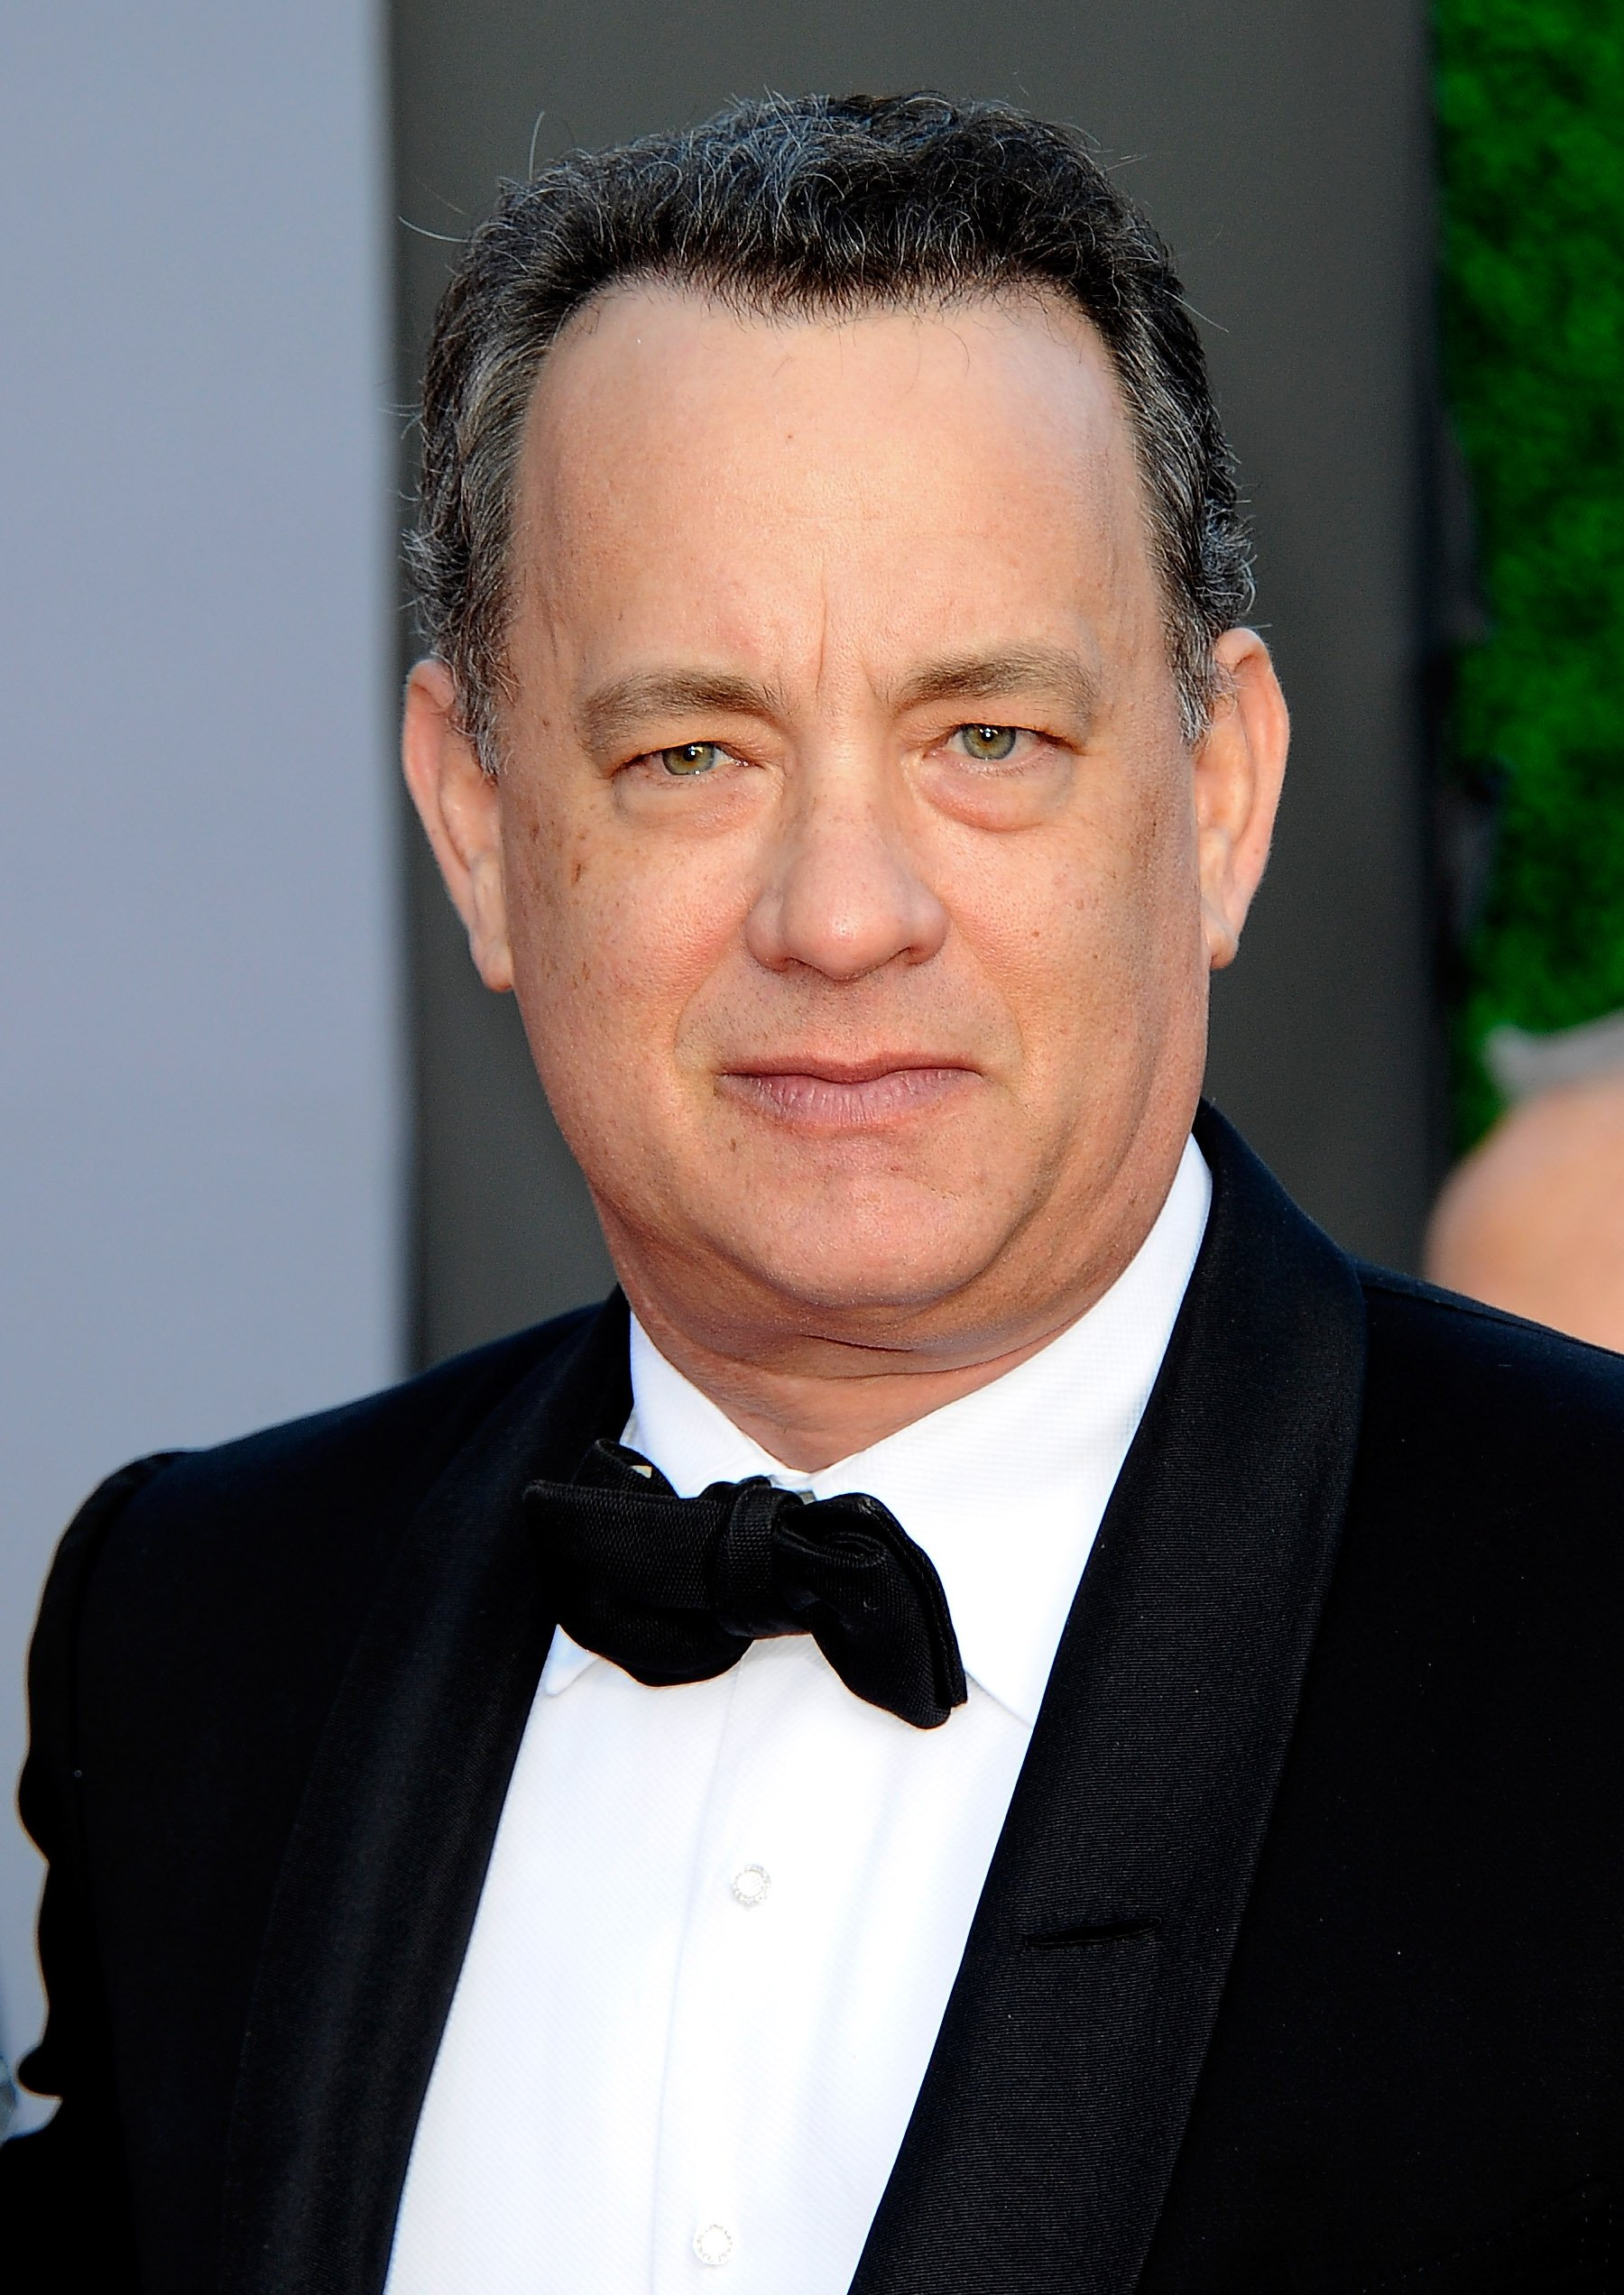 Tom Hanks arrives at the BAFTA Brits To Watch event held at the Belasco Theatre on July 9, 2011, in Los Angeles, California. | Source: Getty Images.